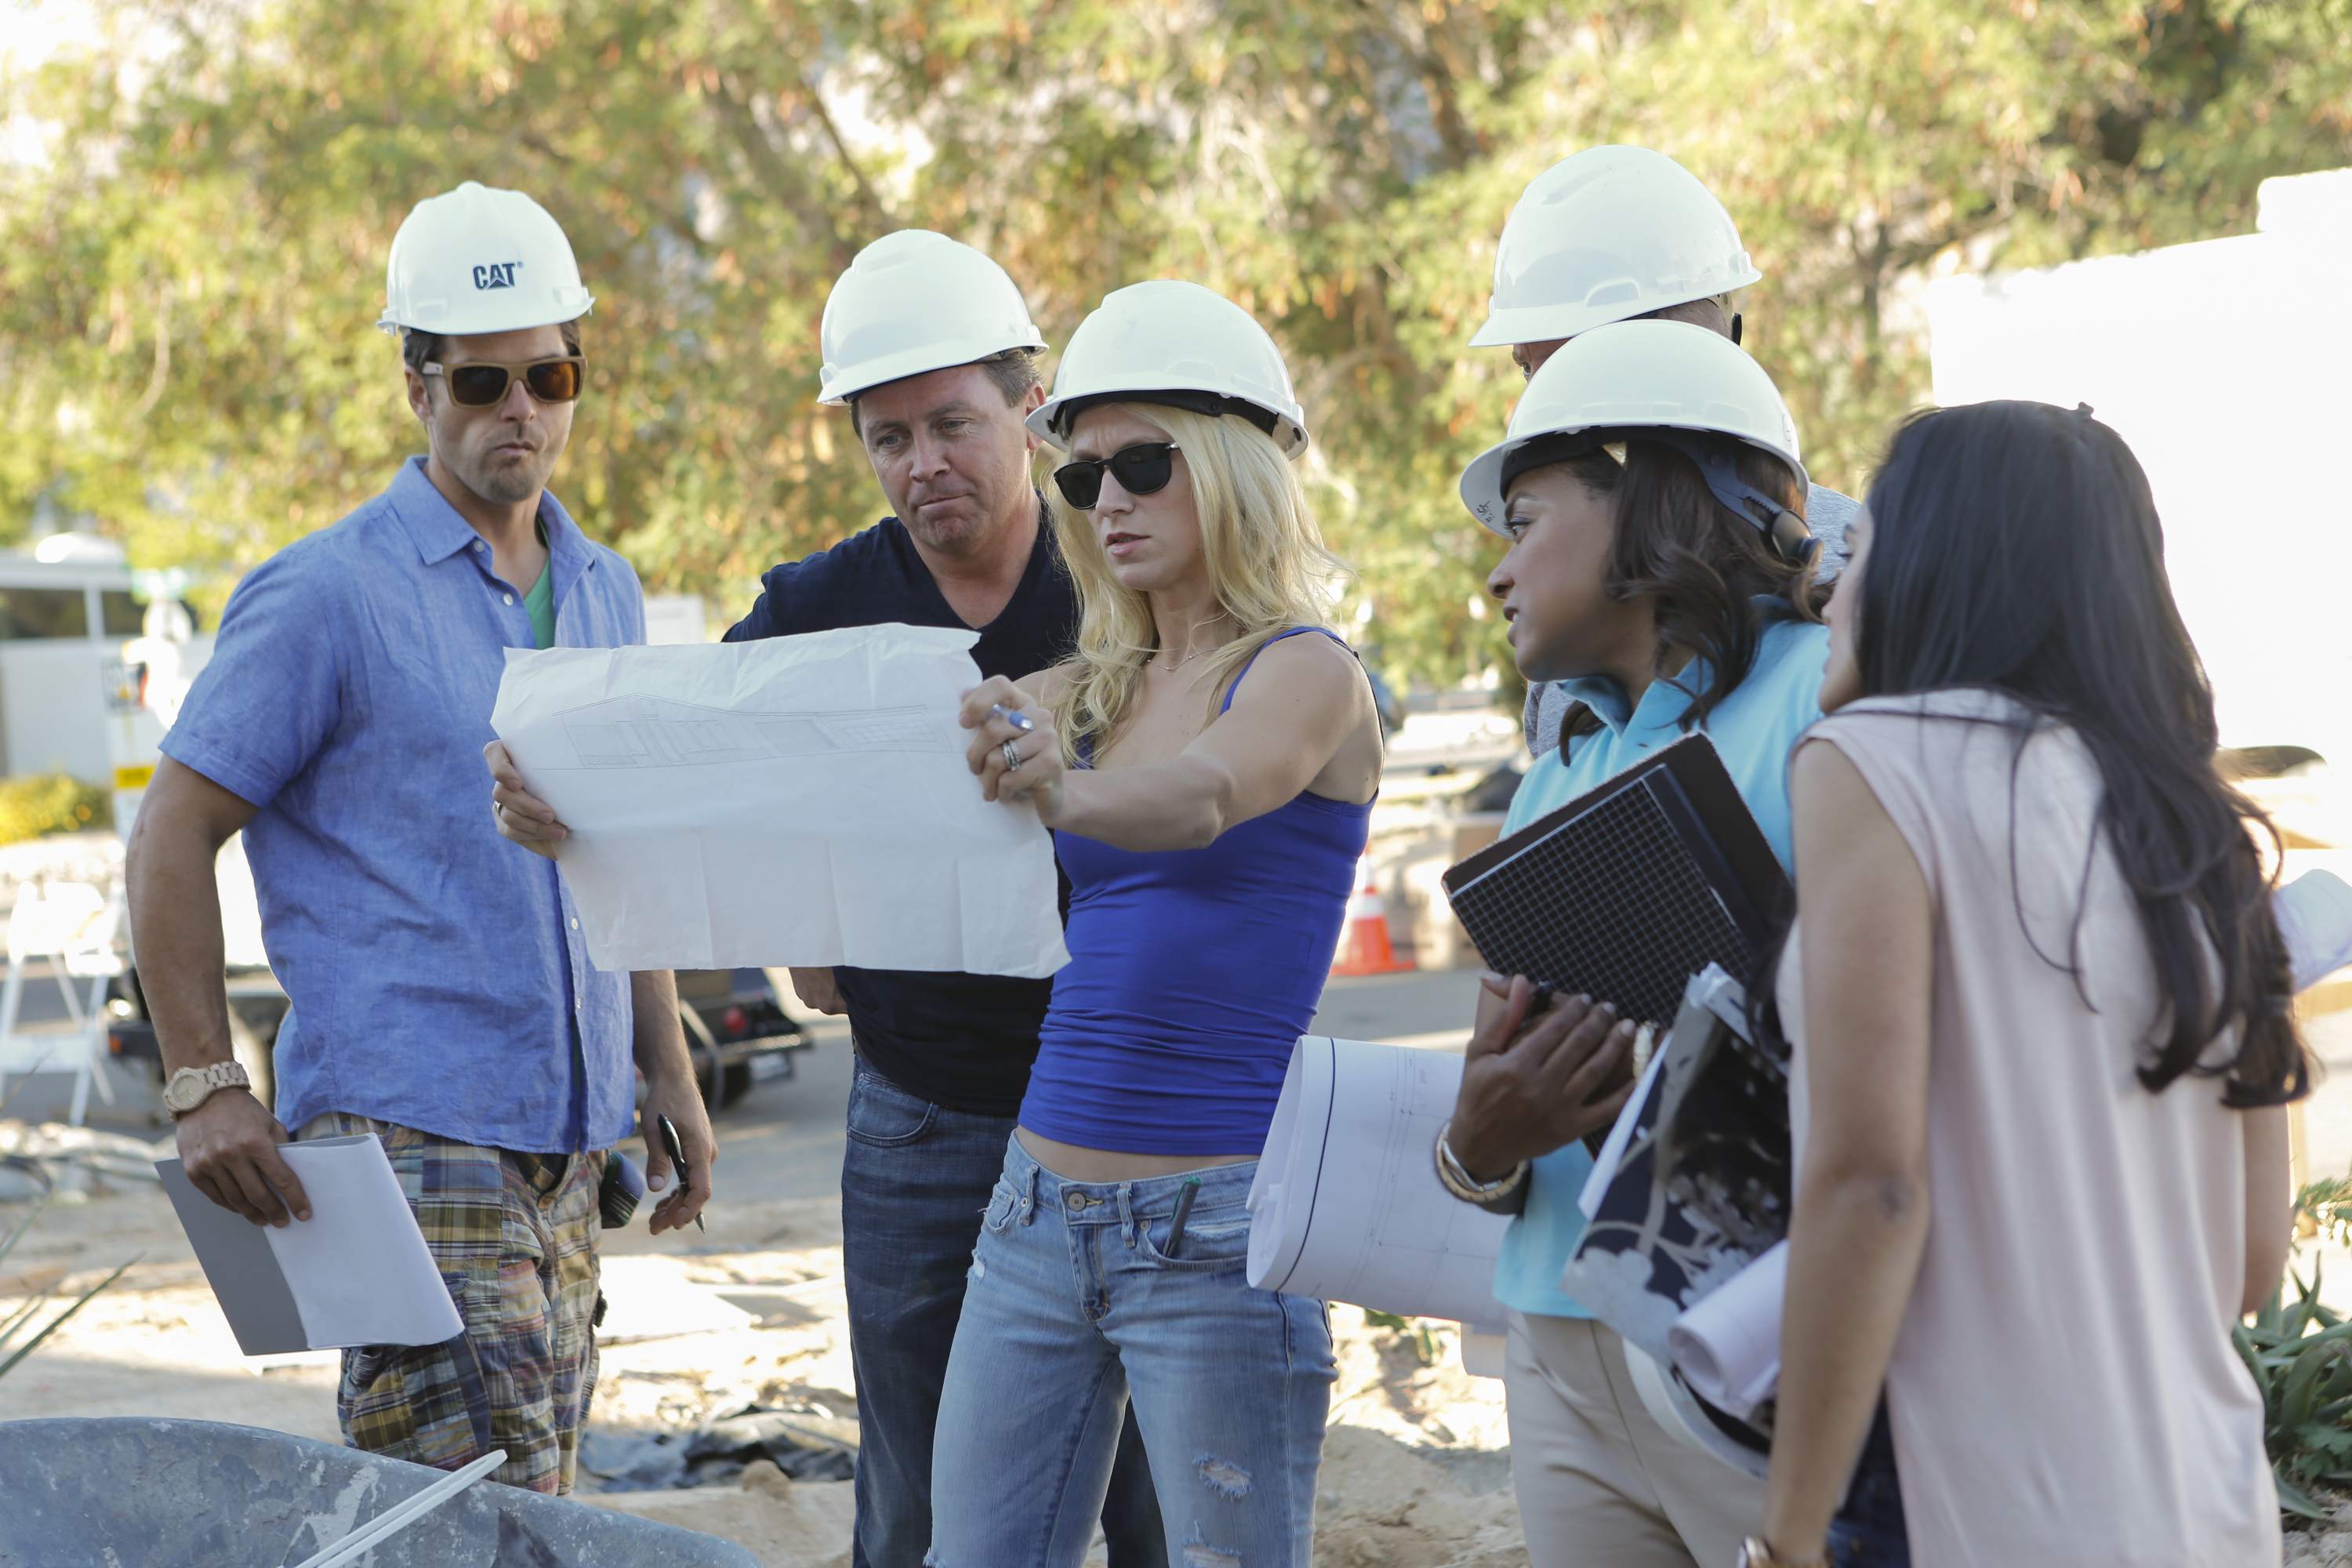 American Dream Builders - The Blue Team reviews the house plan